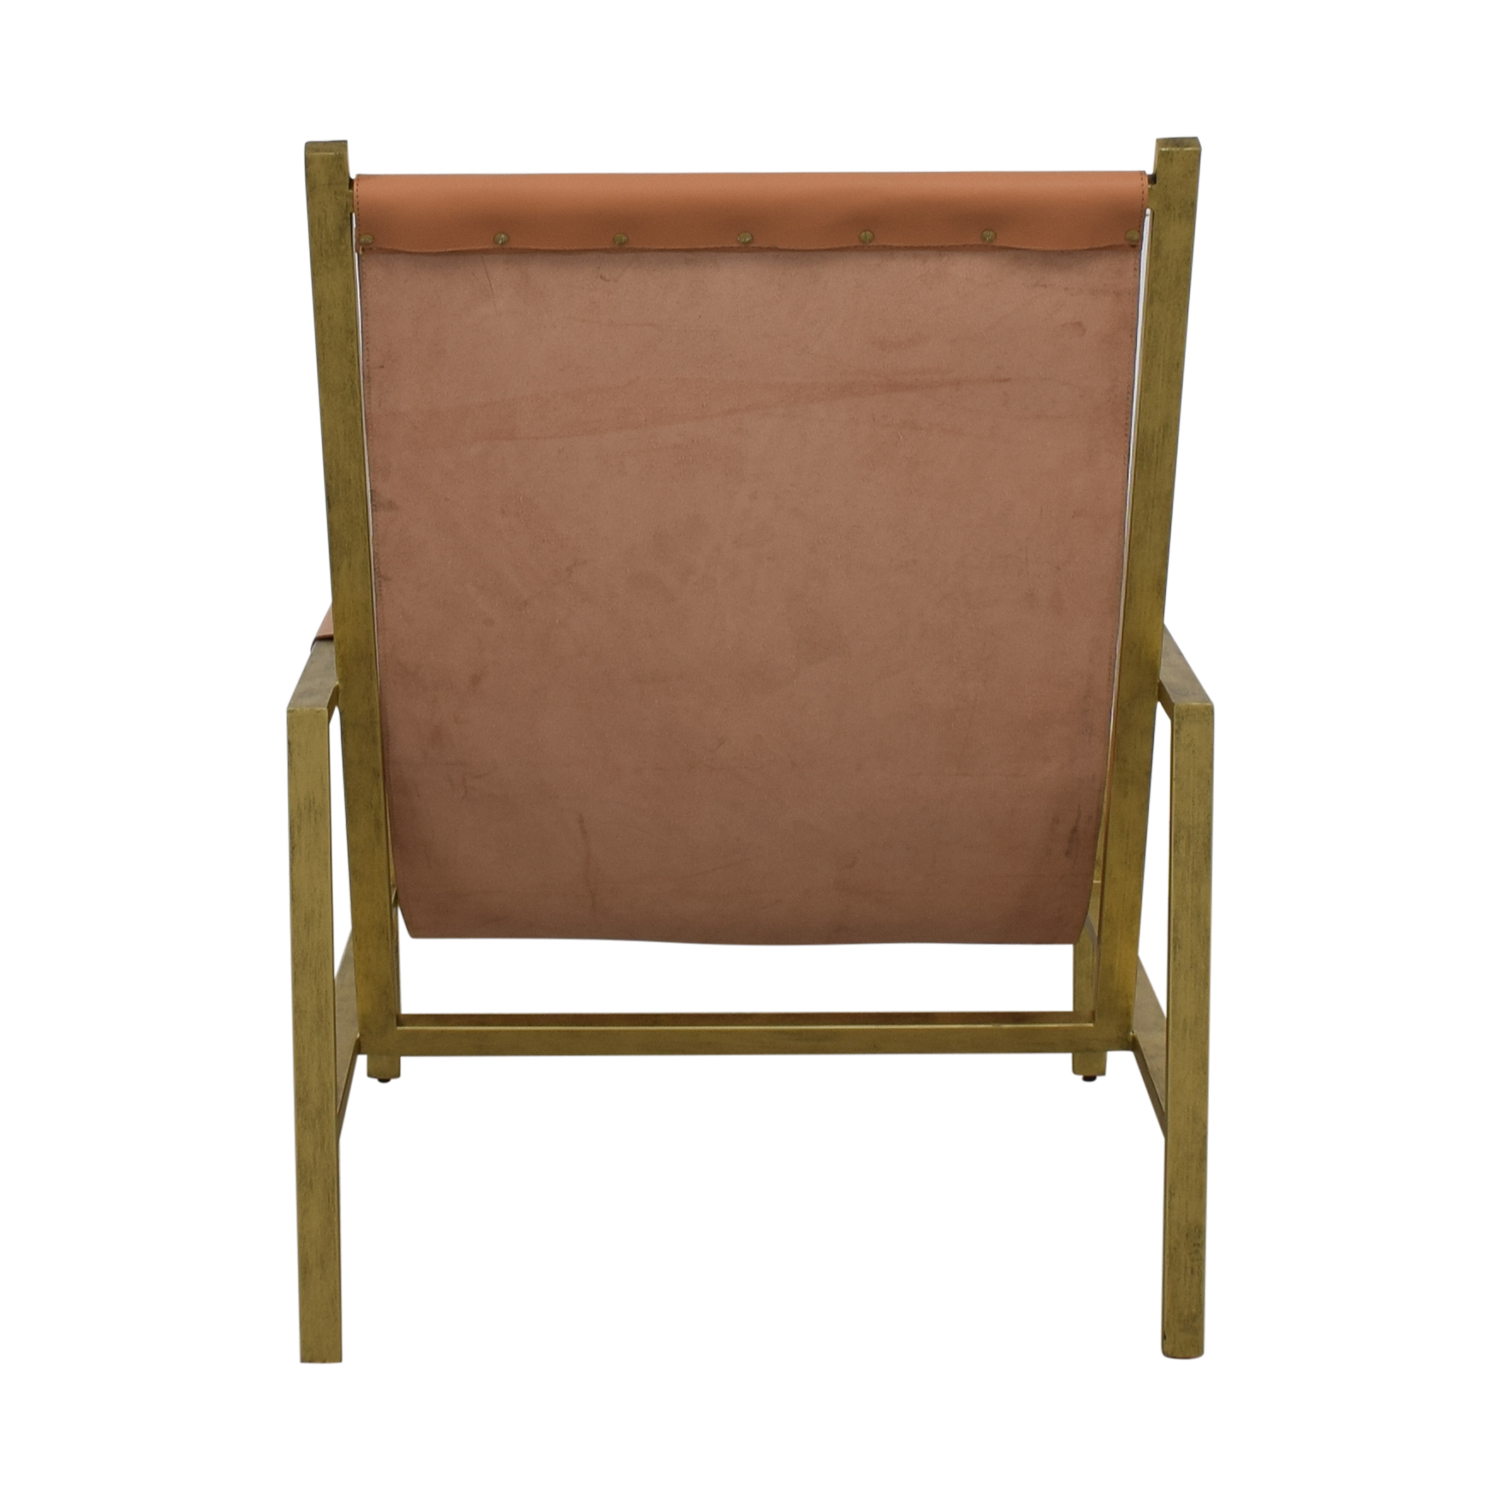 Tan Accent Chair 80 Off One Kings Lane One Kings Lane Tan Leather Accent